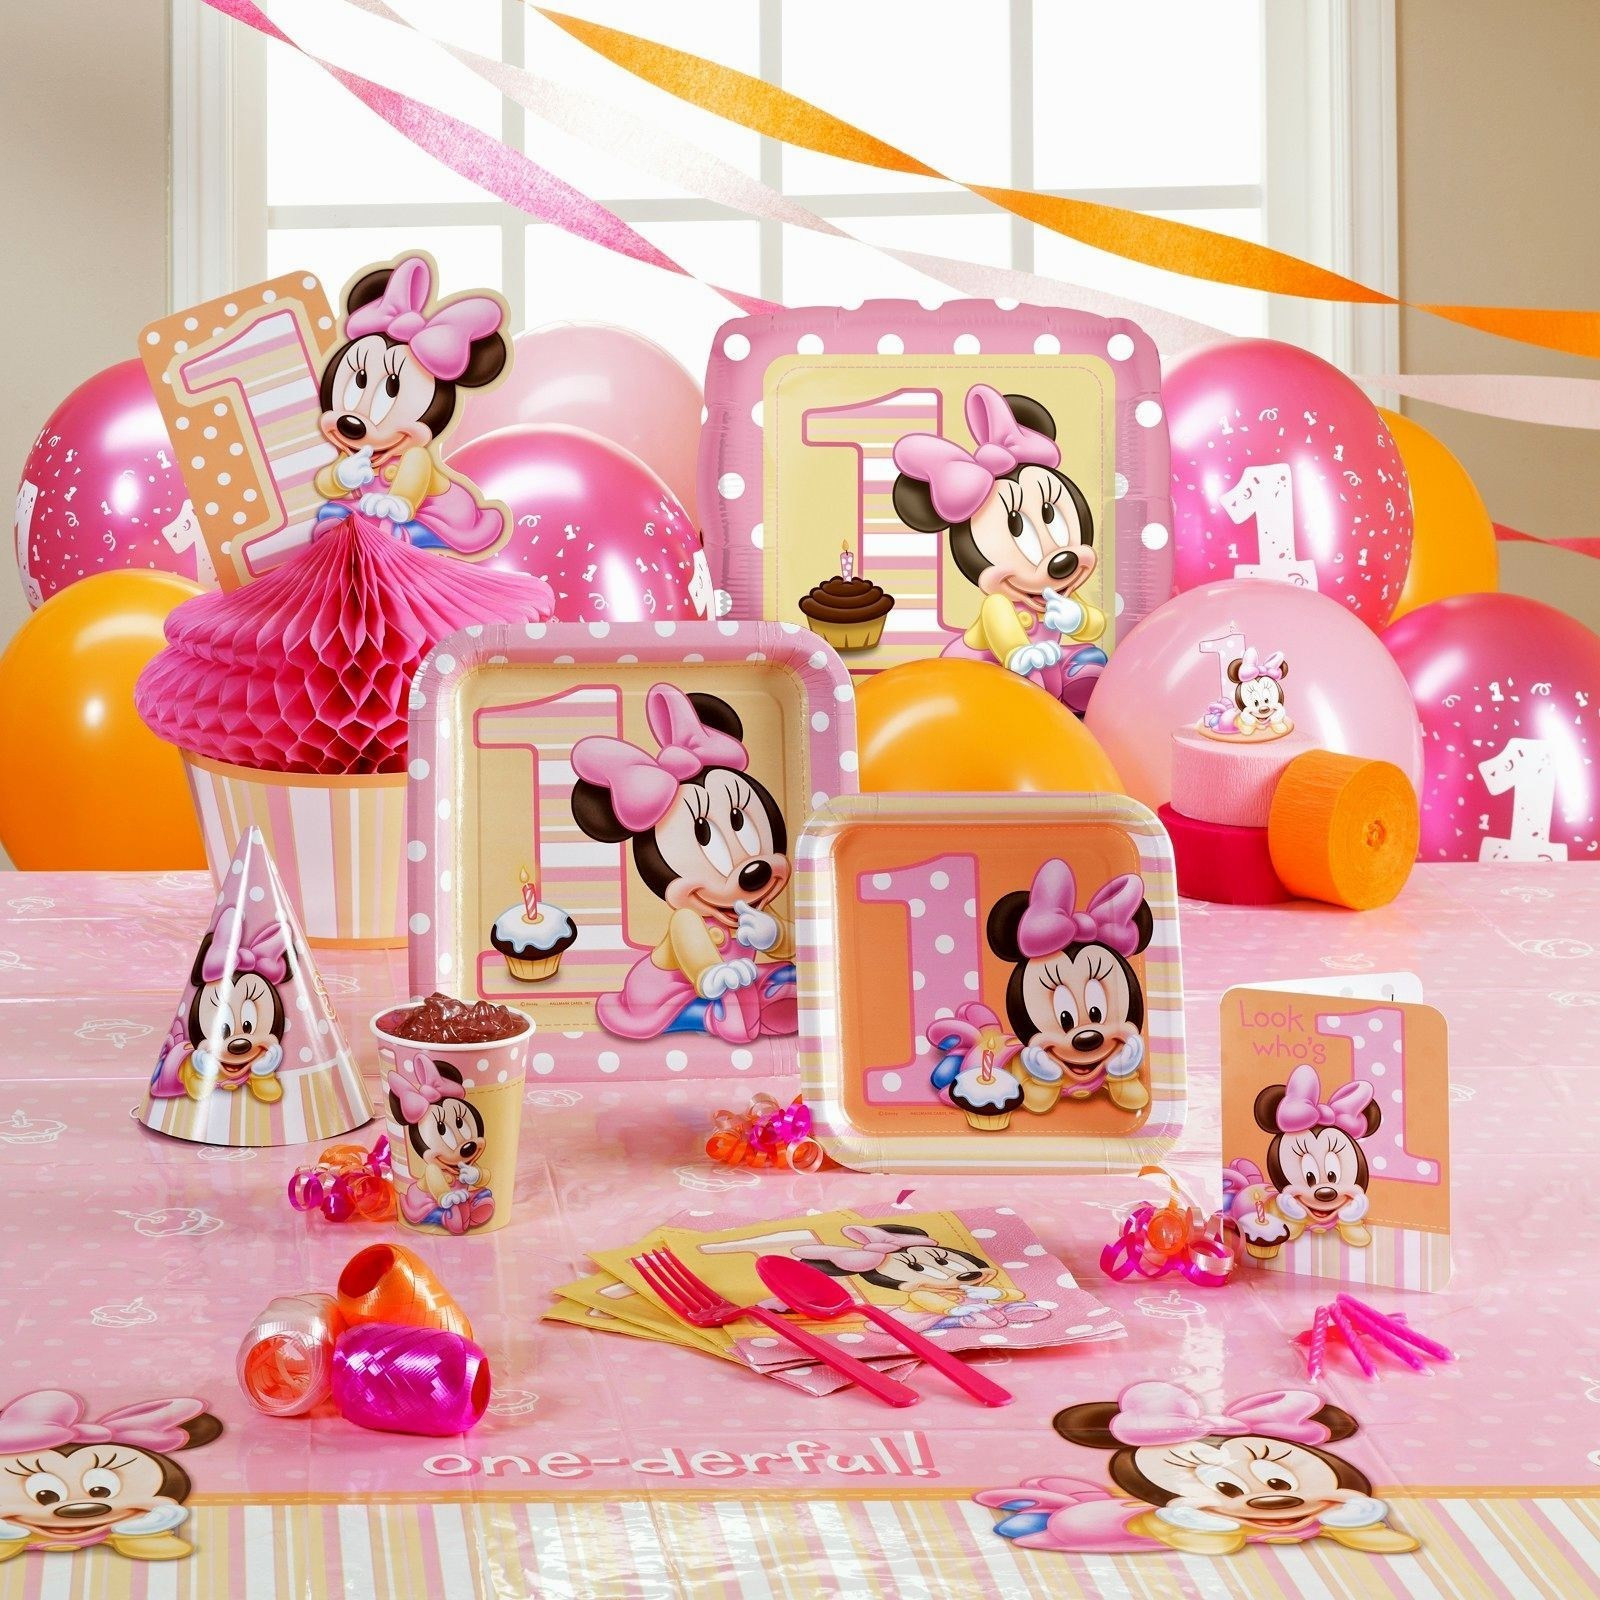 Girls First Birthday Gift Ideas  Fresh First Birthday Decoration Ideas at Home for Girl